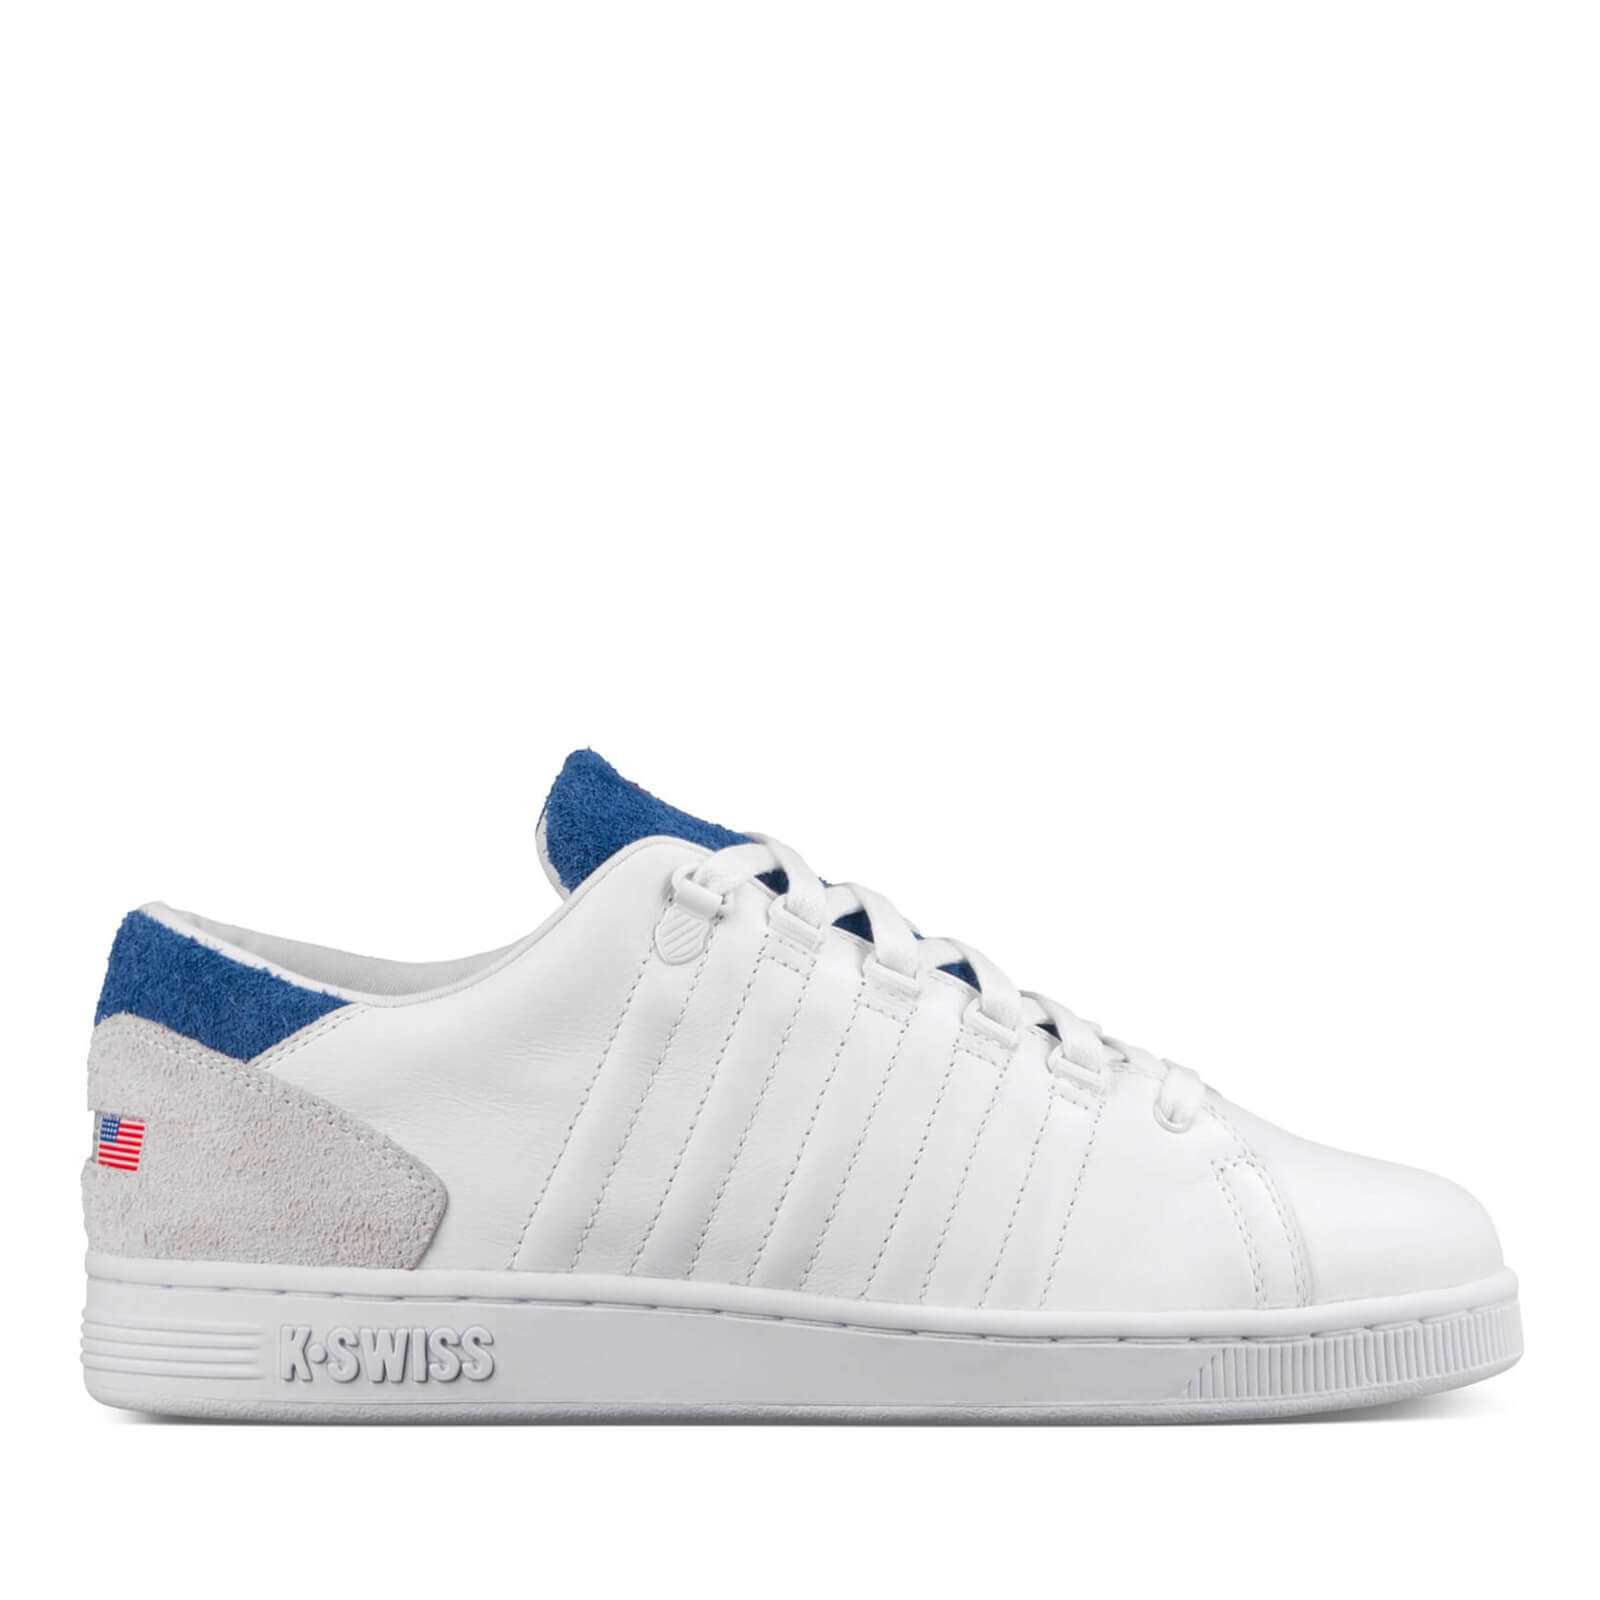 3dac3c44b8aee K-Swiss Men's Lozan III TT Trainers - White/Brunner Blue/Fiery Red